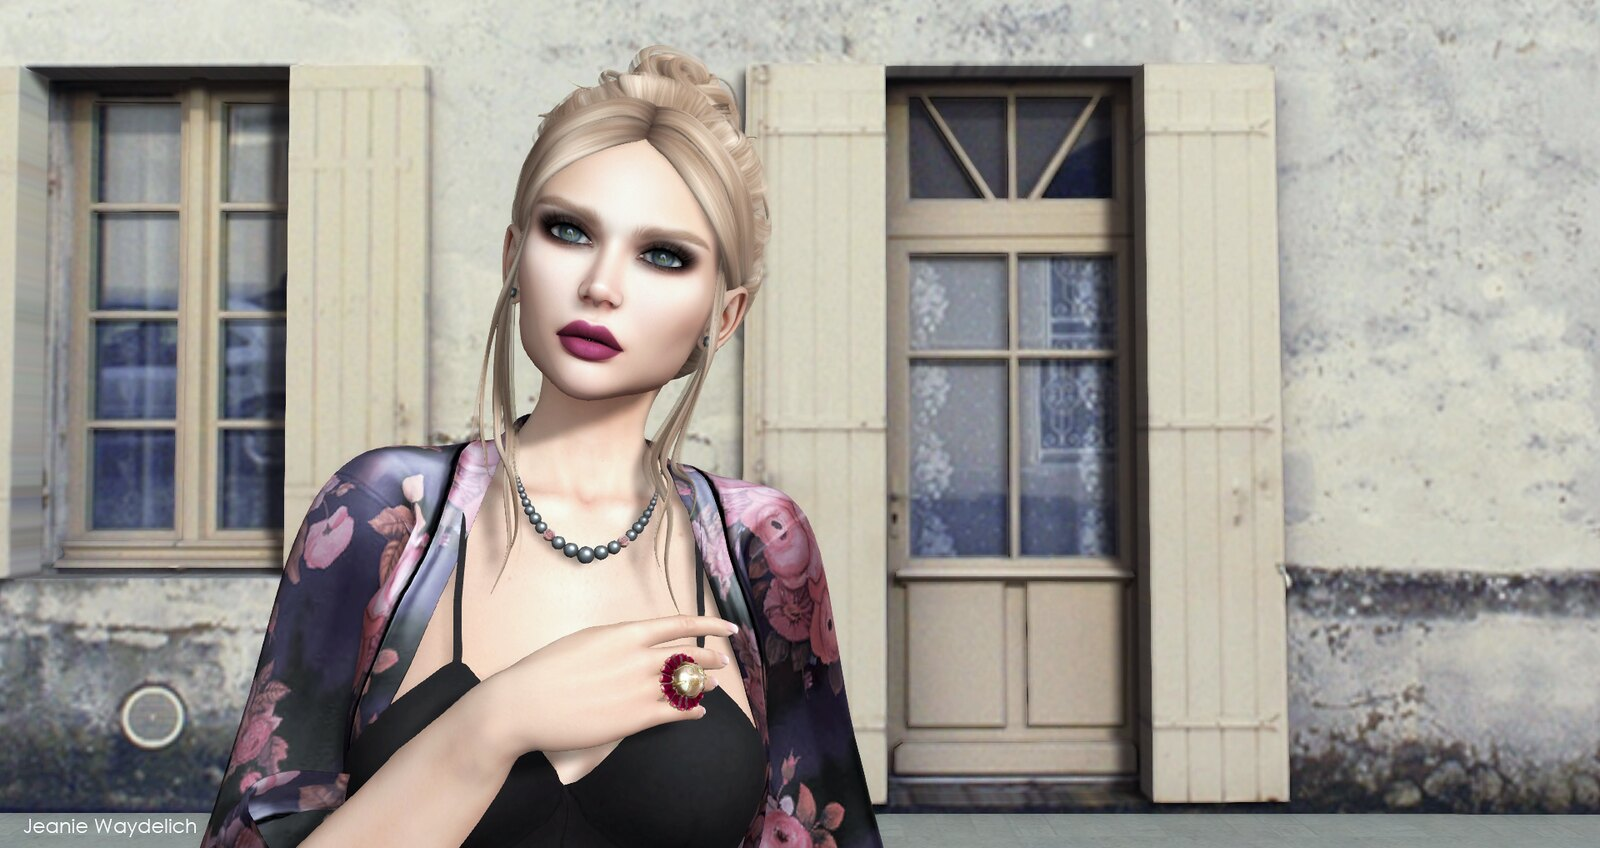 LOTD 927 - The 1st Look